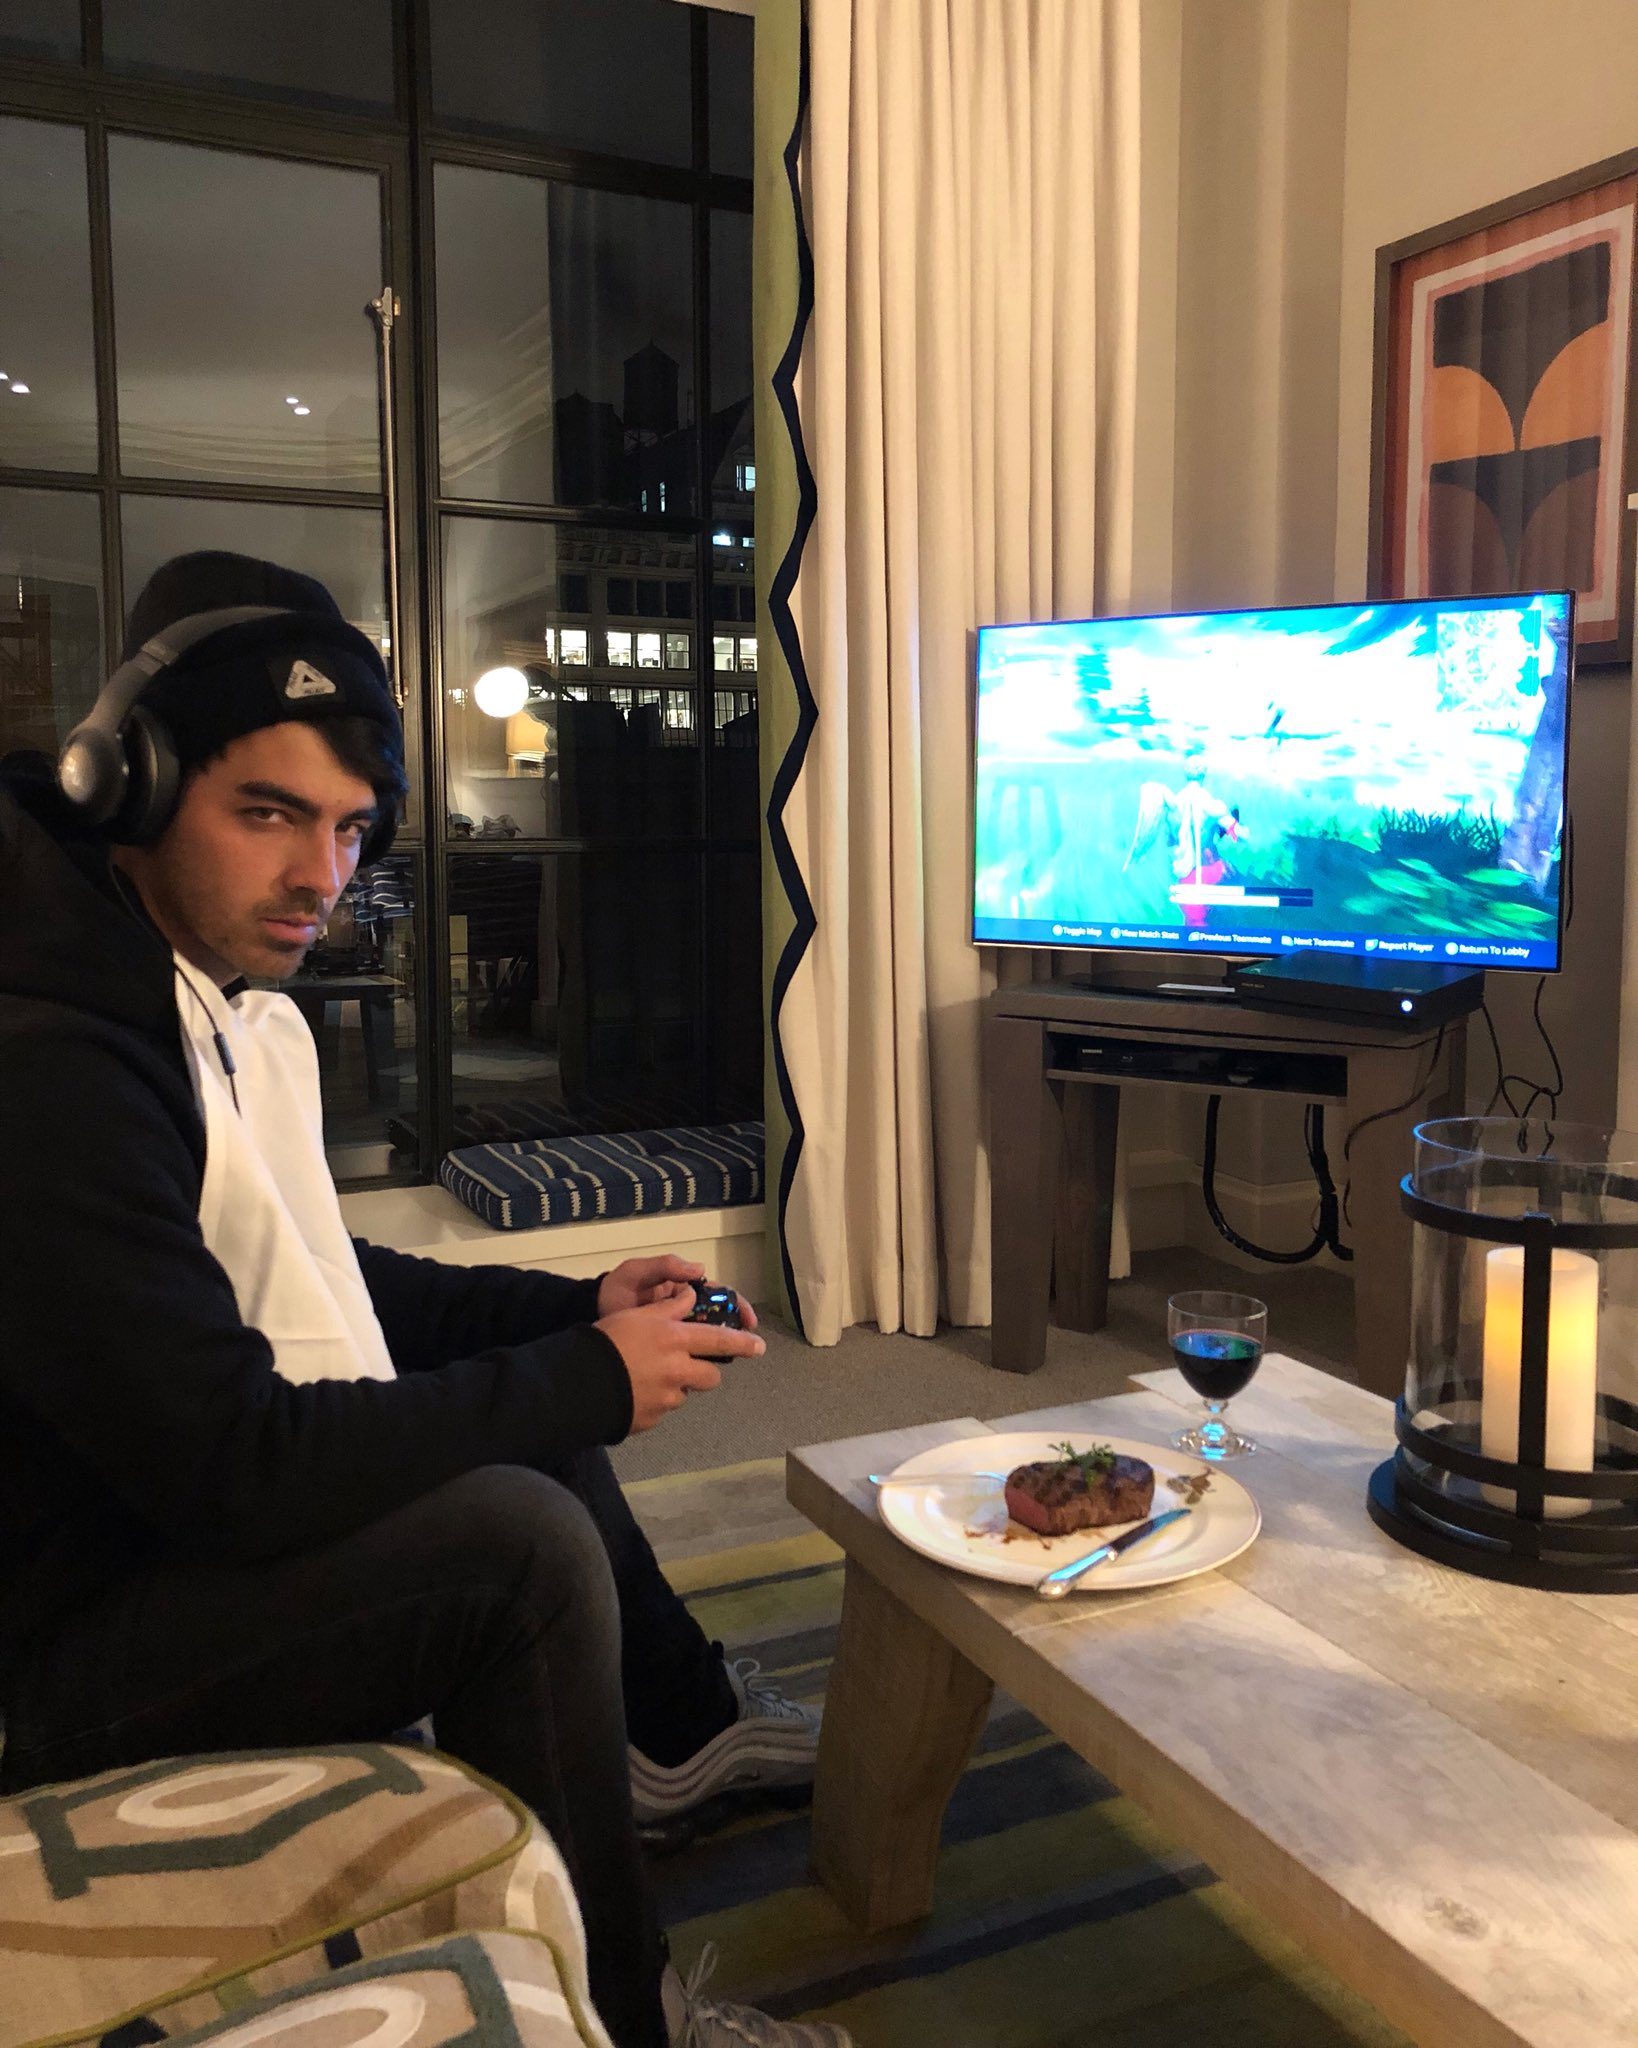 Game night with friends. ������ https://t.co/6rC8rmxYSe